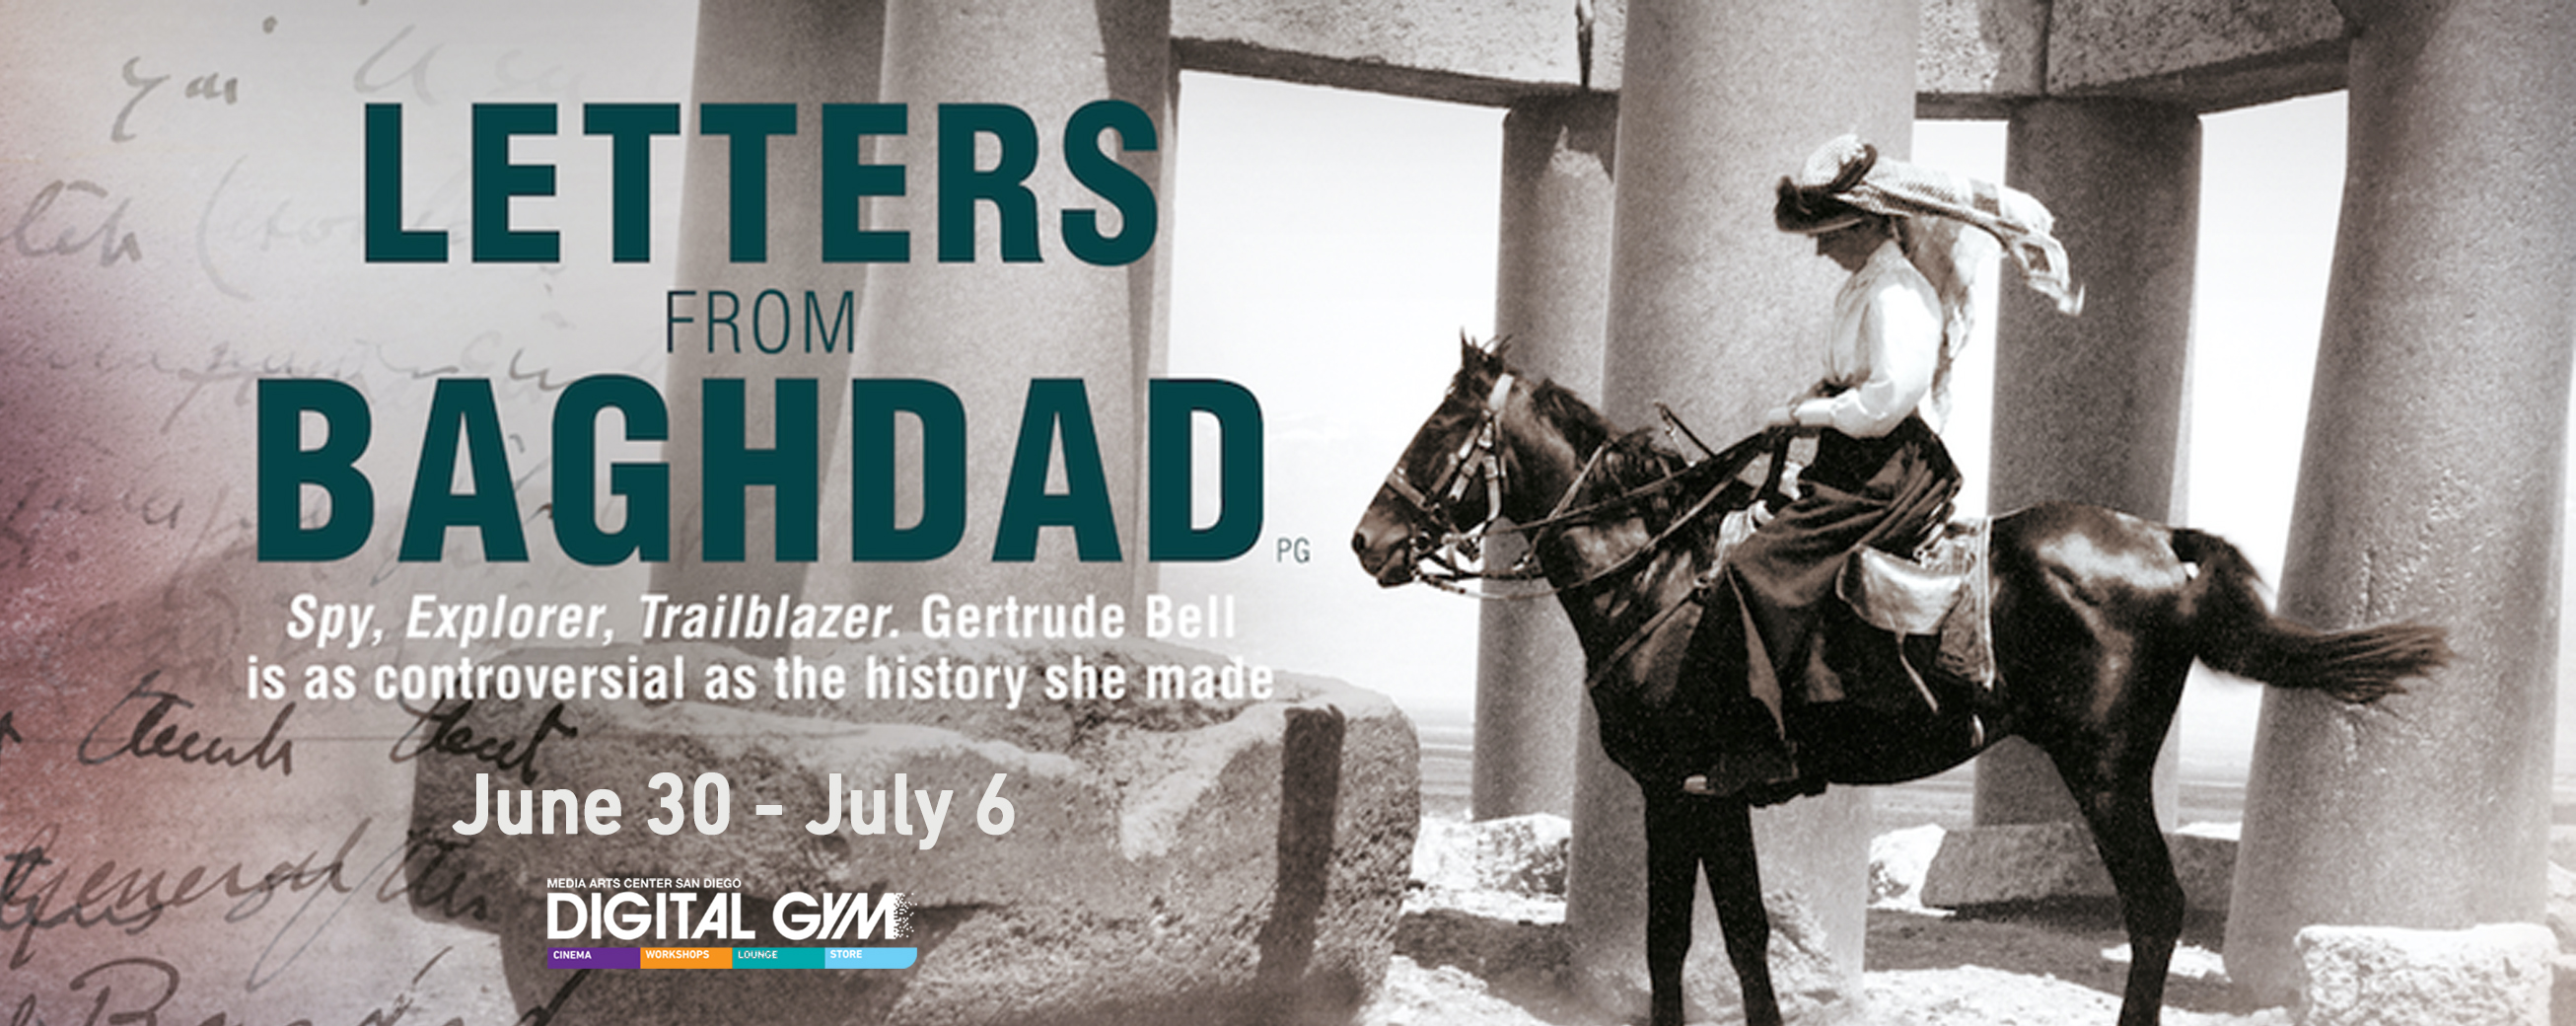 Letters from Baghdad – documentary on Gertrude Bell (June 30 – July 6)